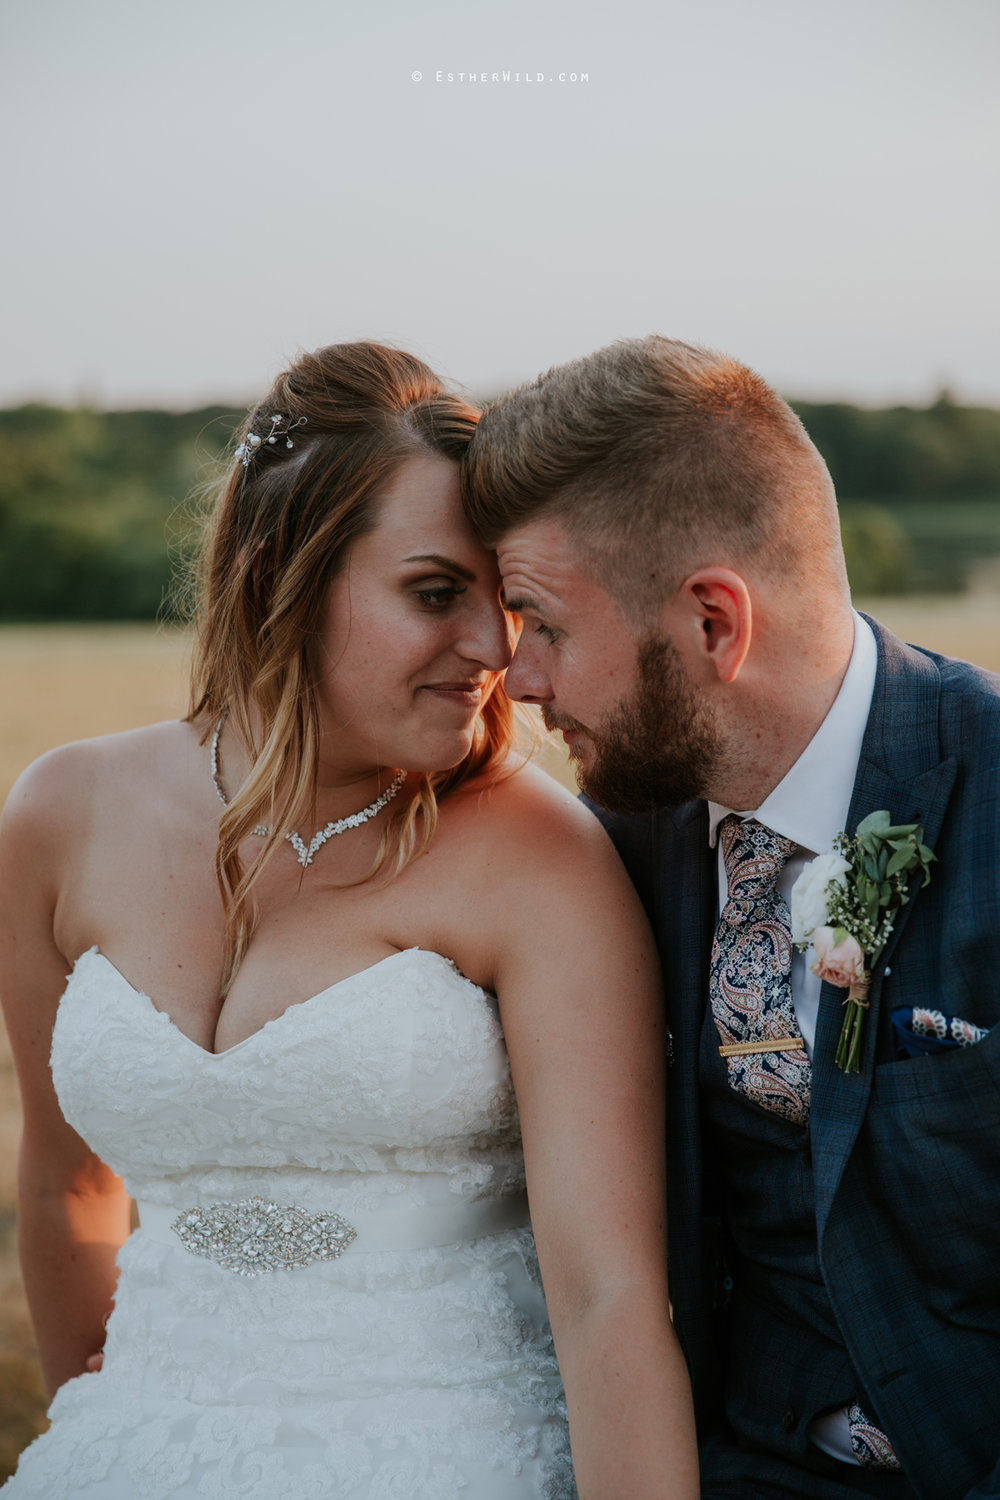 Kimberley_Hall_Wedding_Norfolk_Photography_Esther_Wild_IMG_2527.jpg